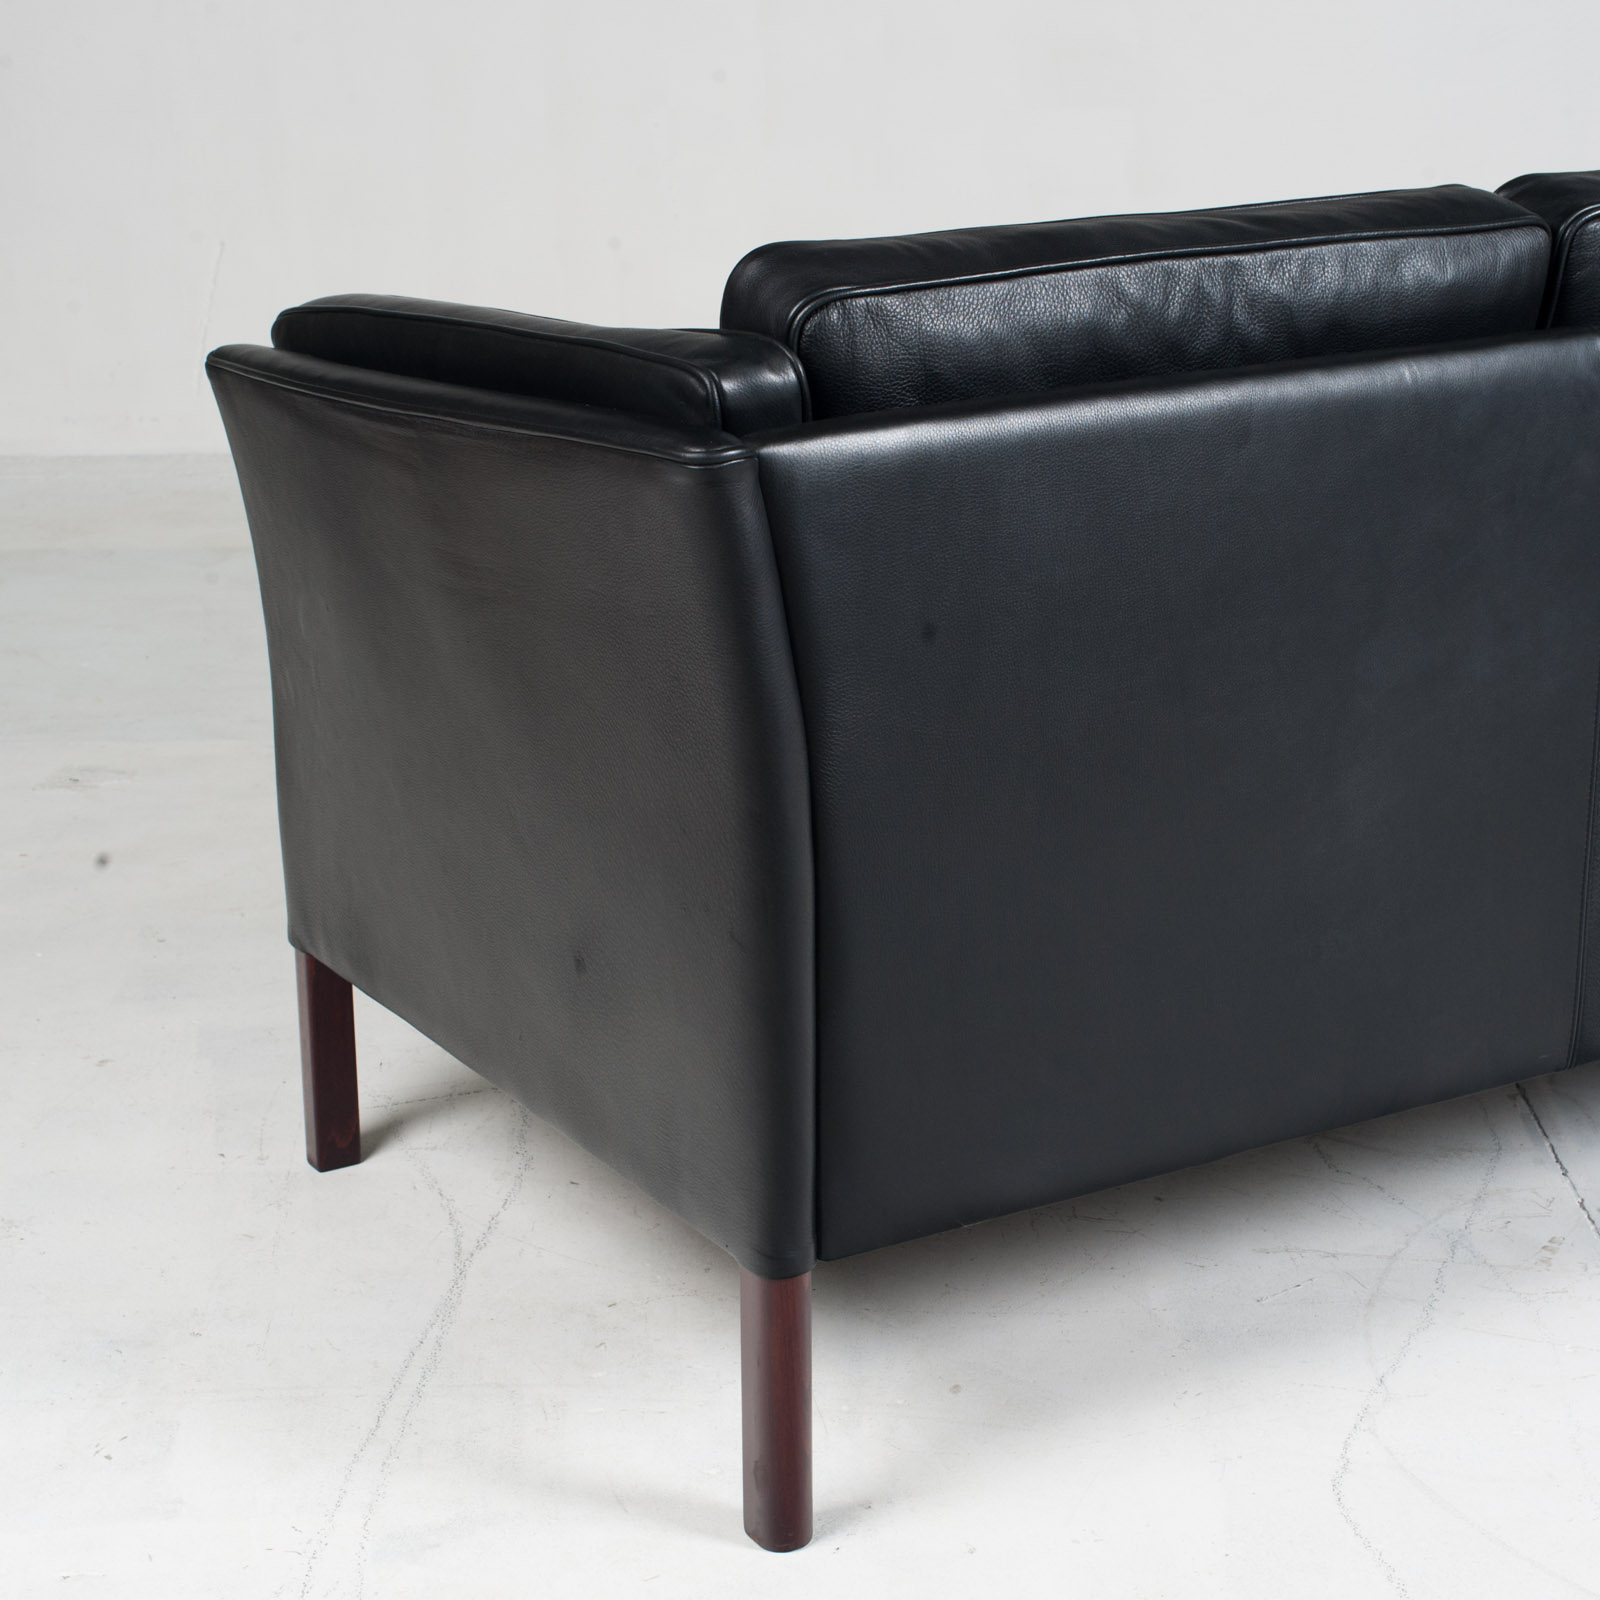 3 Seat Sofa In Black Aniline Leather 1960s Denmark 13